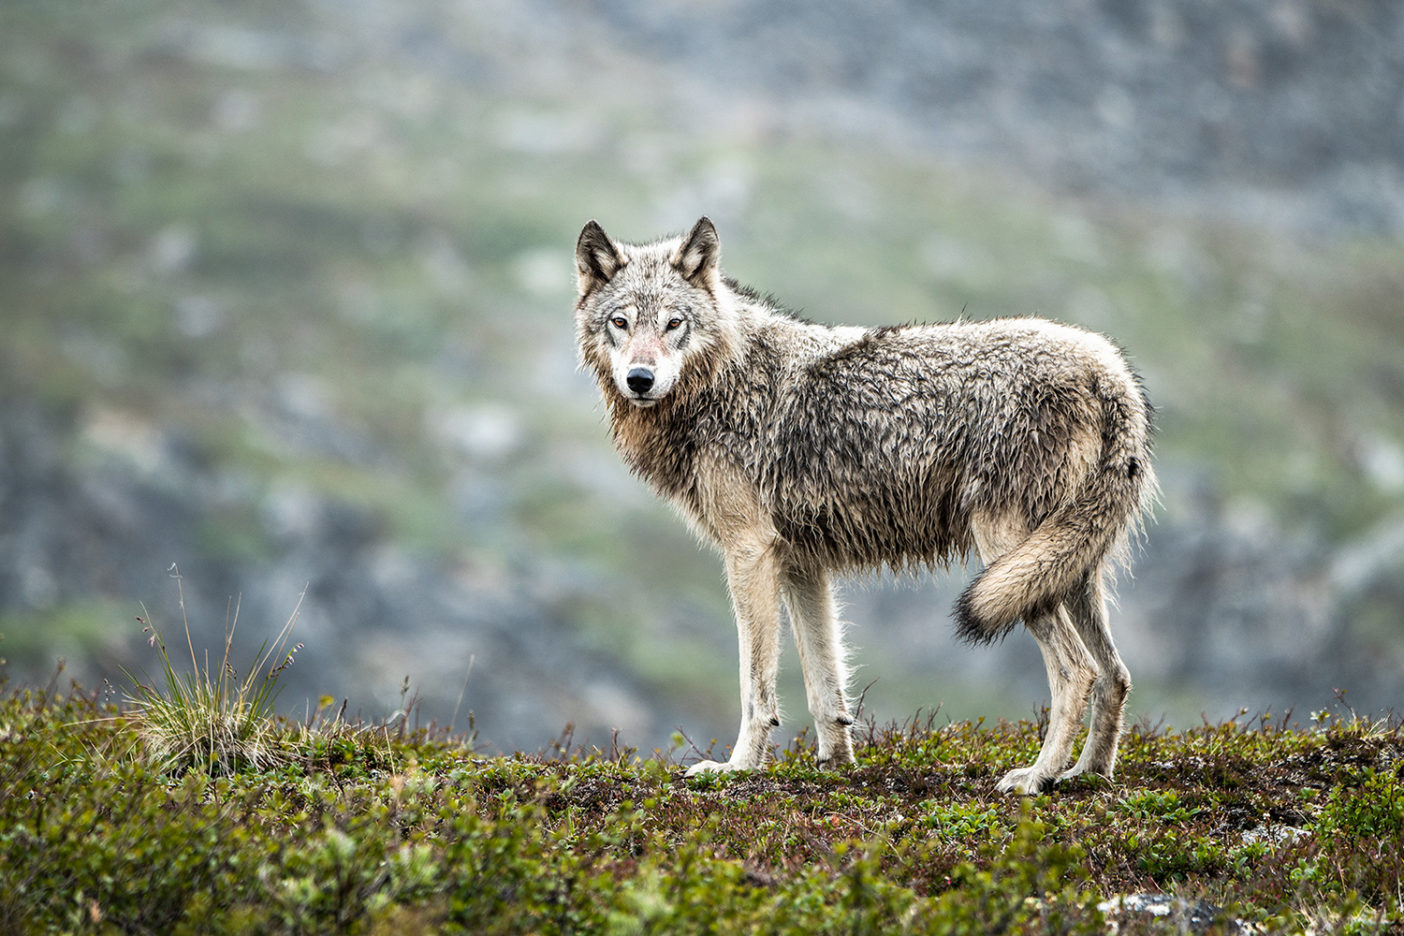 The Arctic Refuge is home to gray wolves, including this one seen in the Jago River valley, Alaska. Photo: Austin Siadak